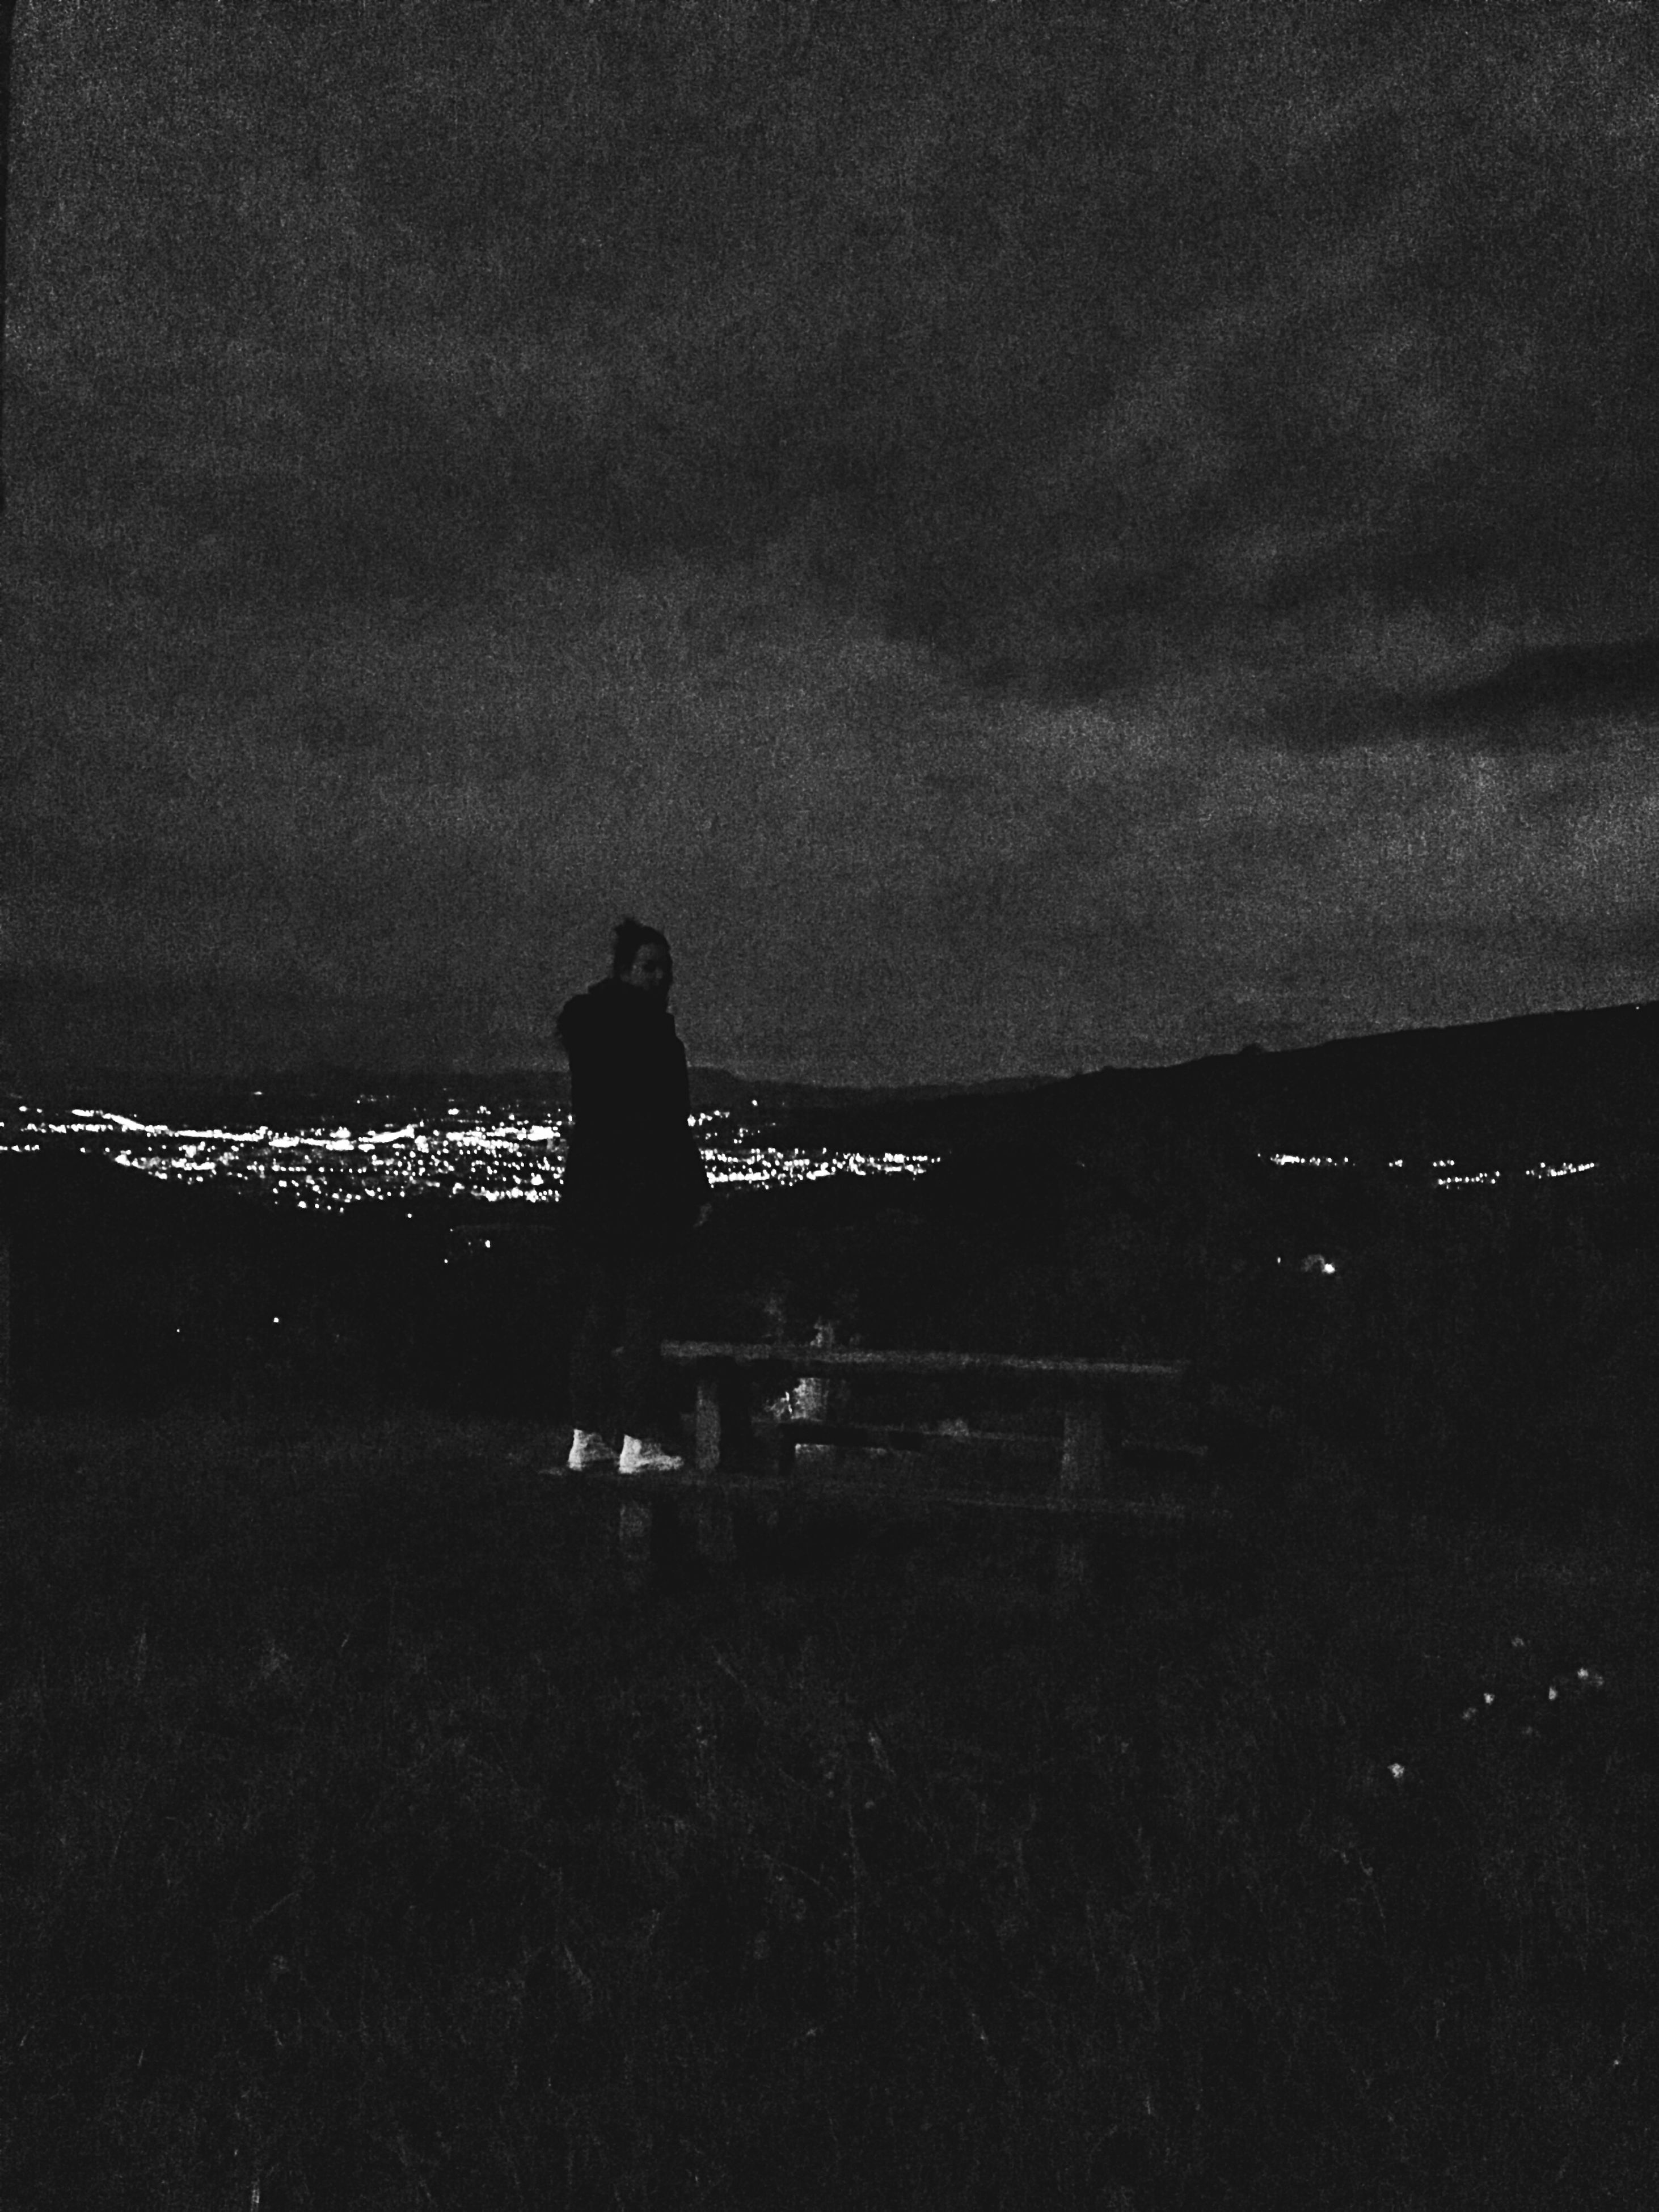 silhouette, men, lifestyles, sky, leisure activity, standing, rear view, person, dusk, sitting, night, built structure, dark, unrecognizable person, full length, cloud - sky, togetherness